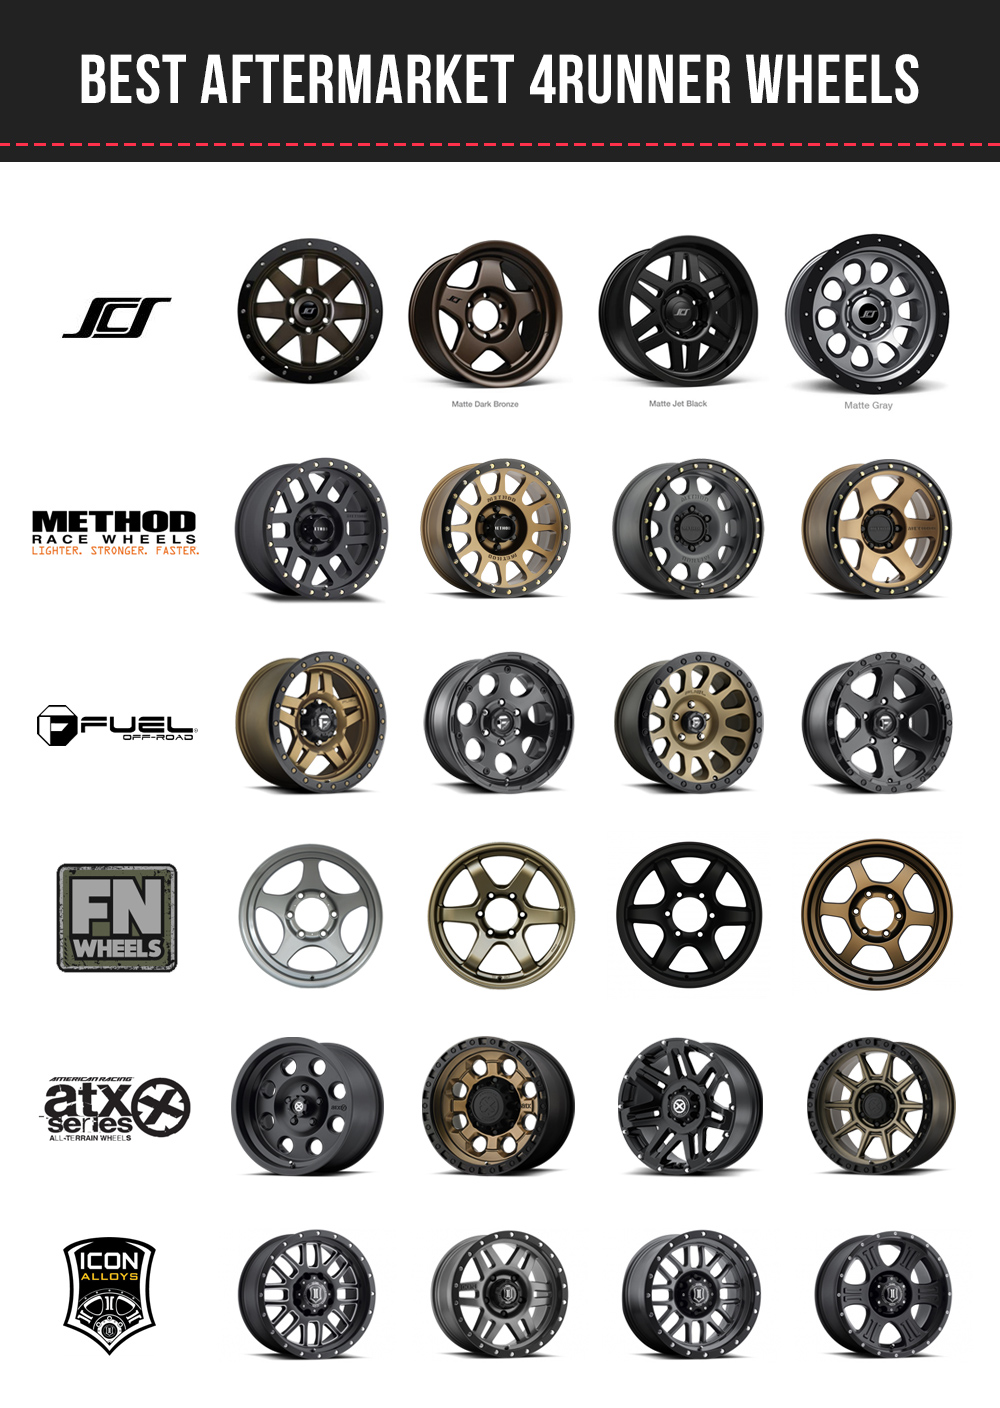 Best Aftermarket 4Runner Wheels